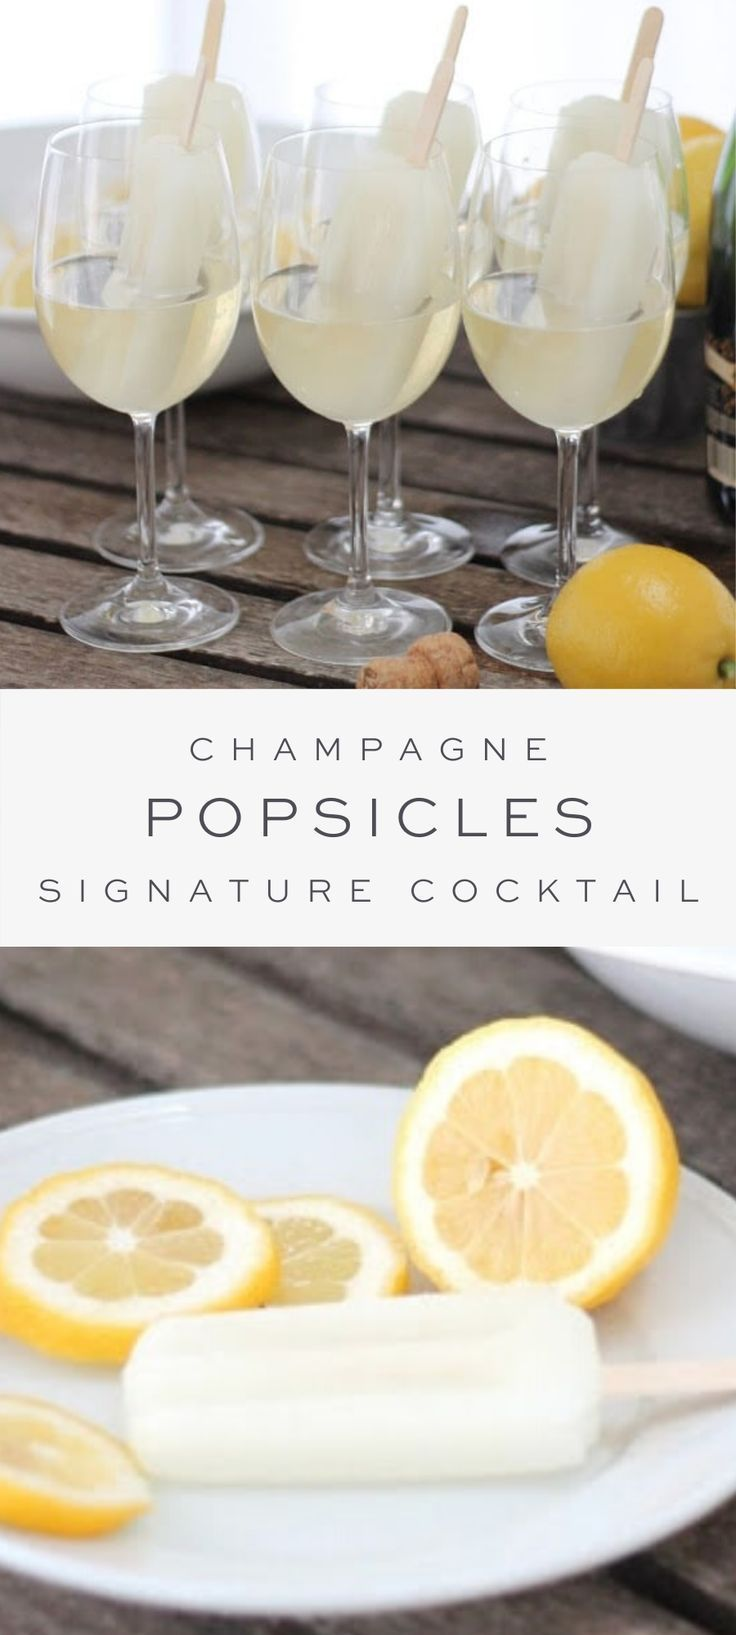 Signature Cocktail | Champagne Popsicles